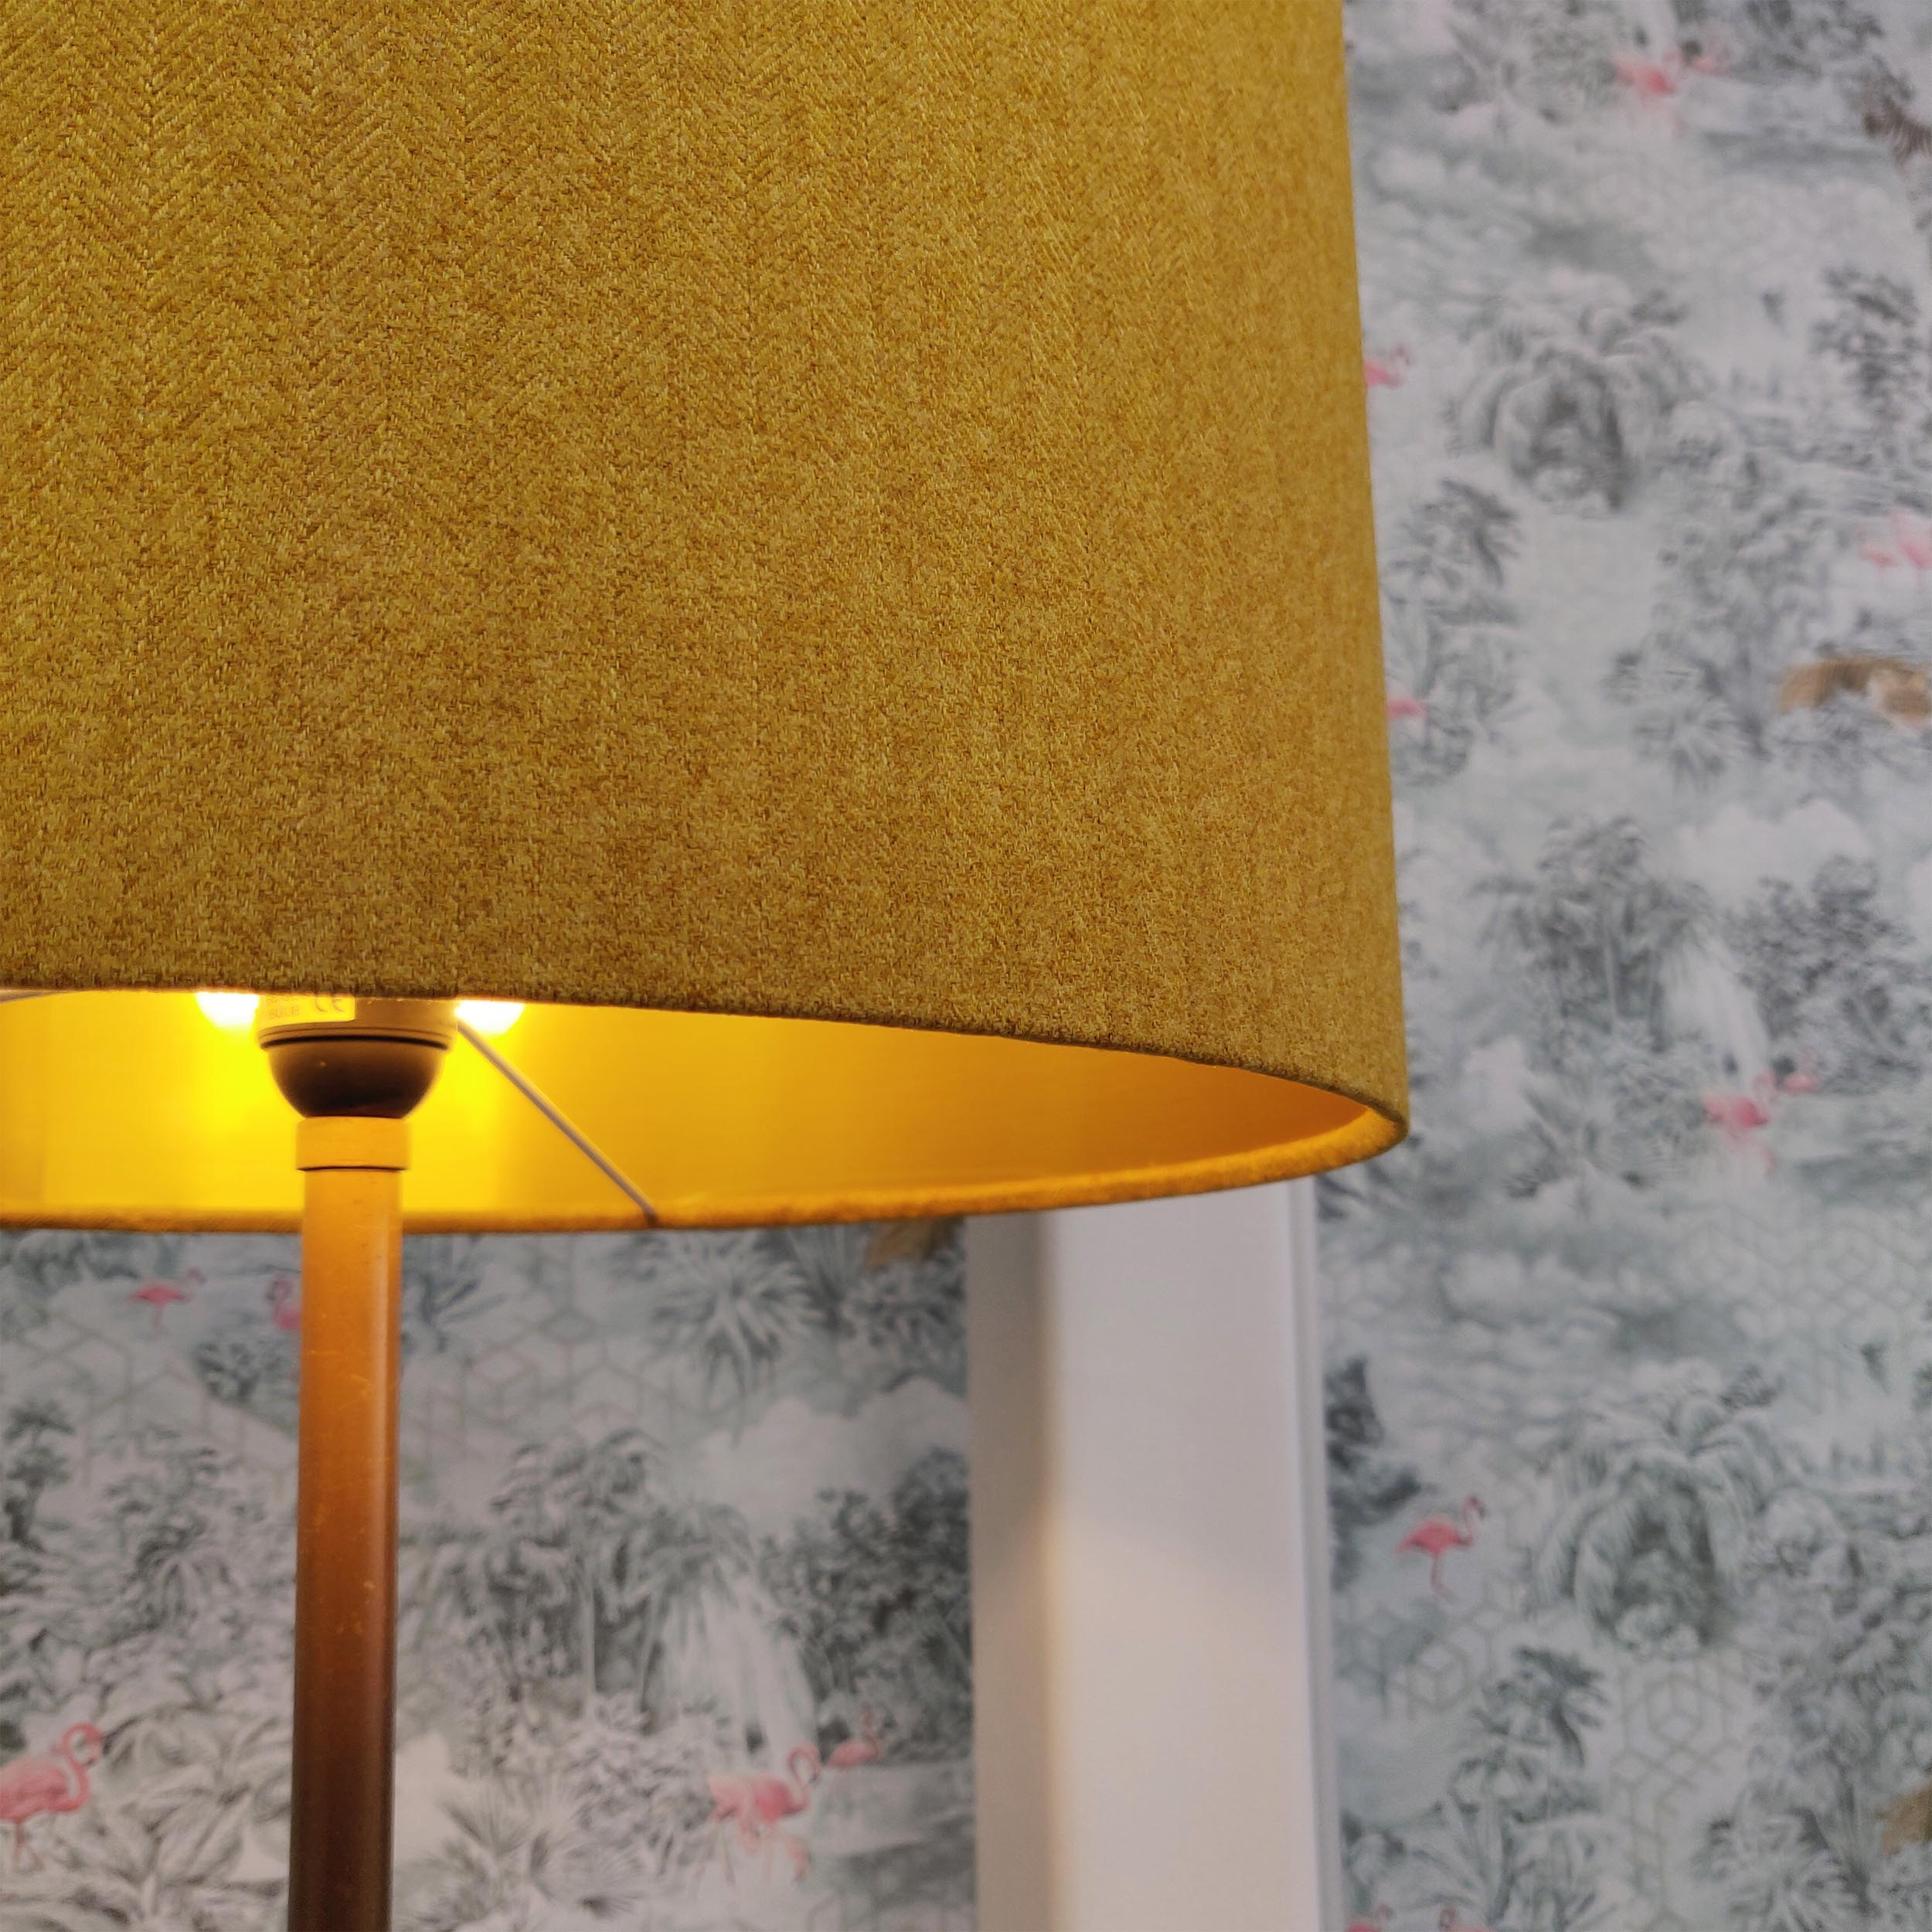 **SALE** Large 40cm Mustard Lampshade in Tweed with Gold Lining